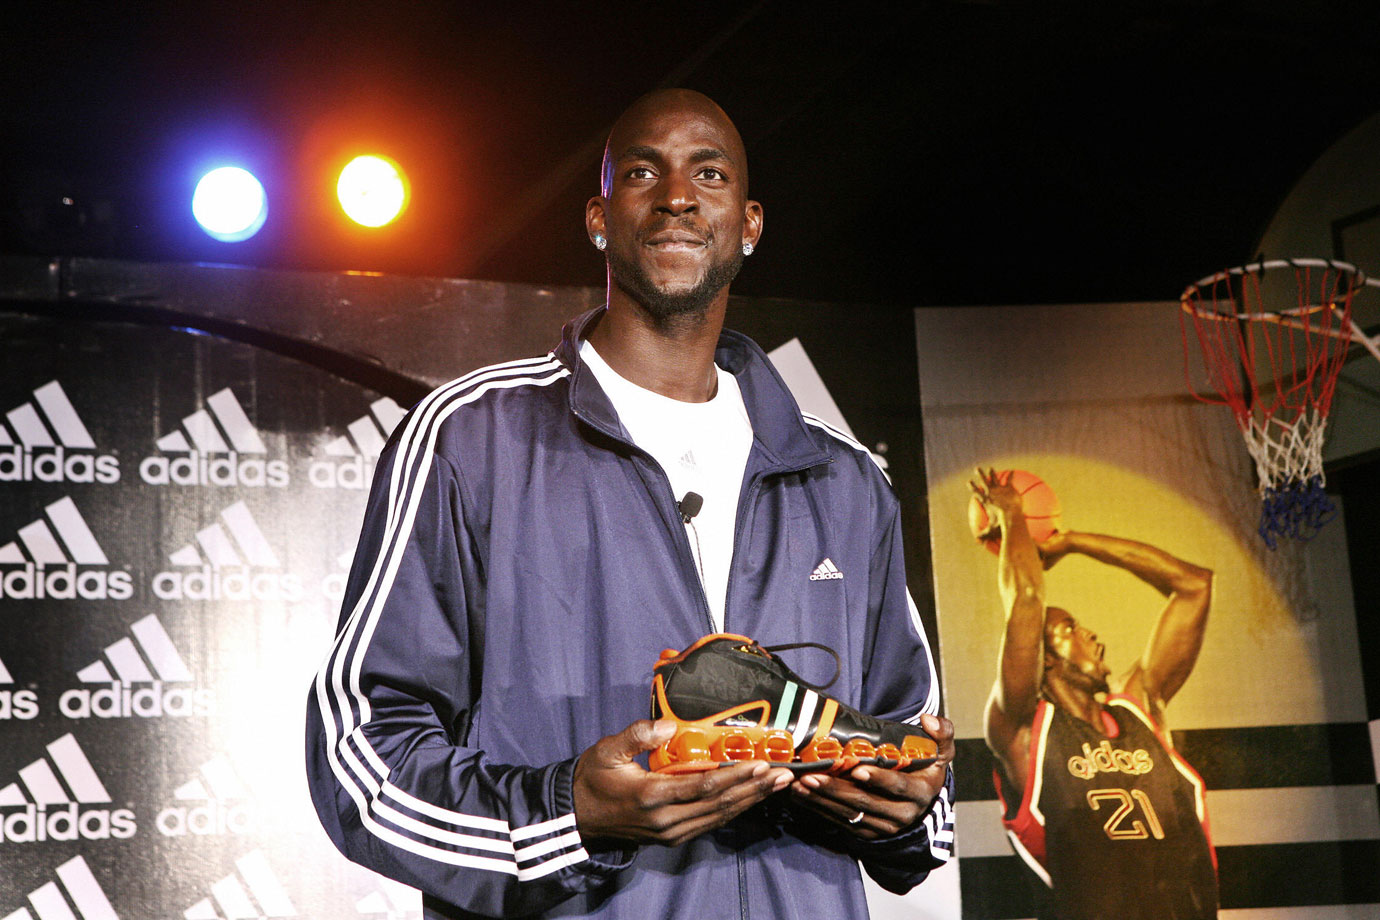 Kevin Garnett travels to New Delhi to debut his limited edition 'Adidas KG basketball shoe.'